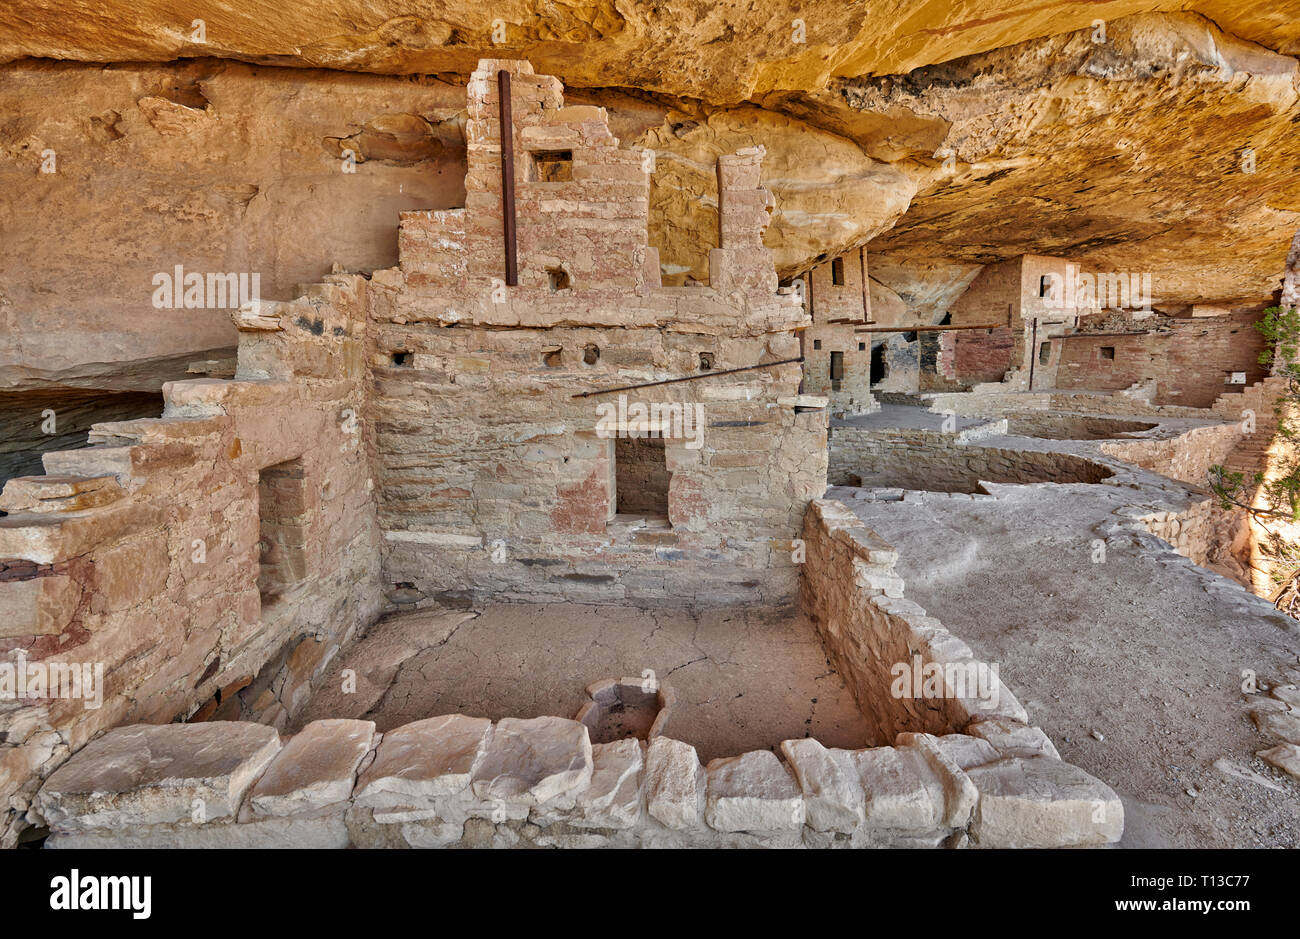 Balcony House, Cliff dwellings in Mesa-Verde-National Park, UNESCO world heritage site, Colorado, USA, North America Stock Photo